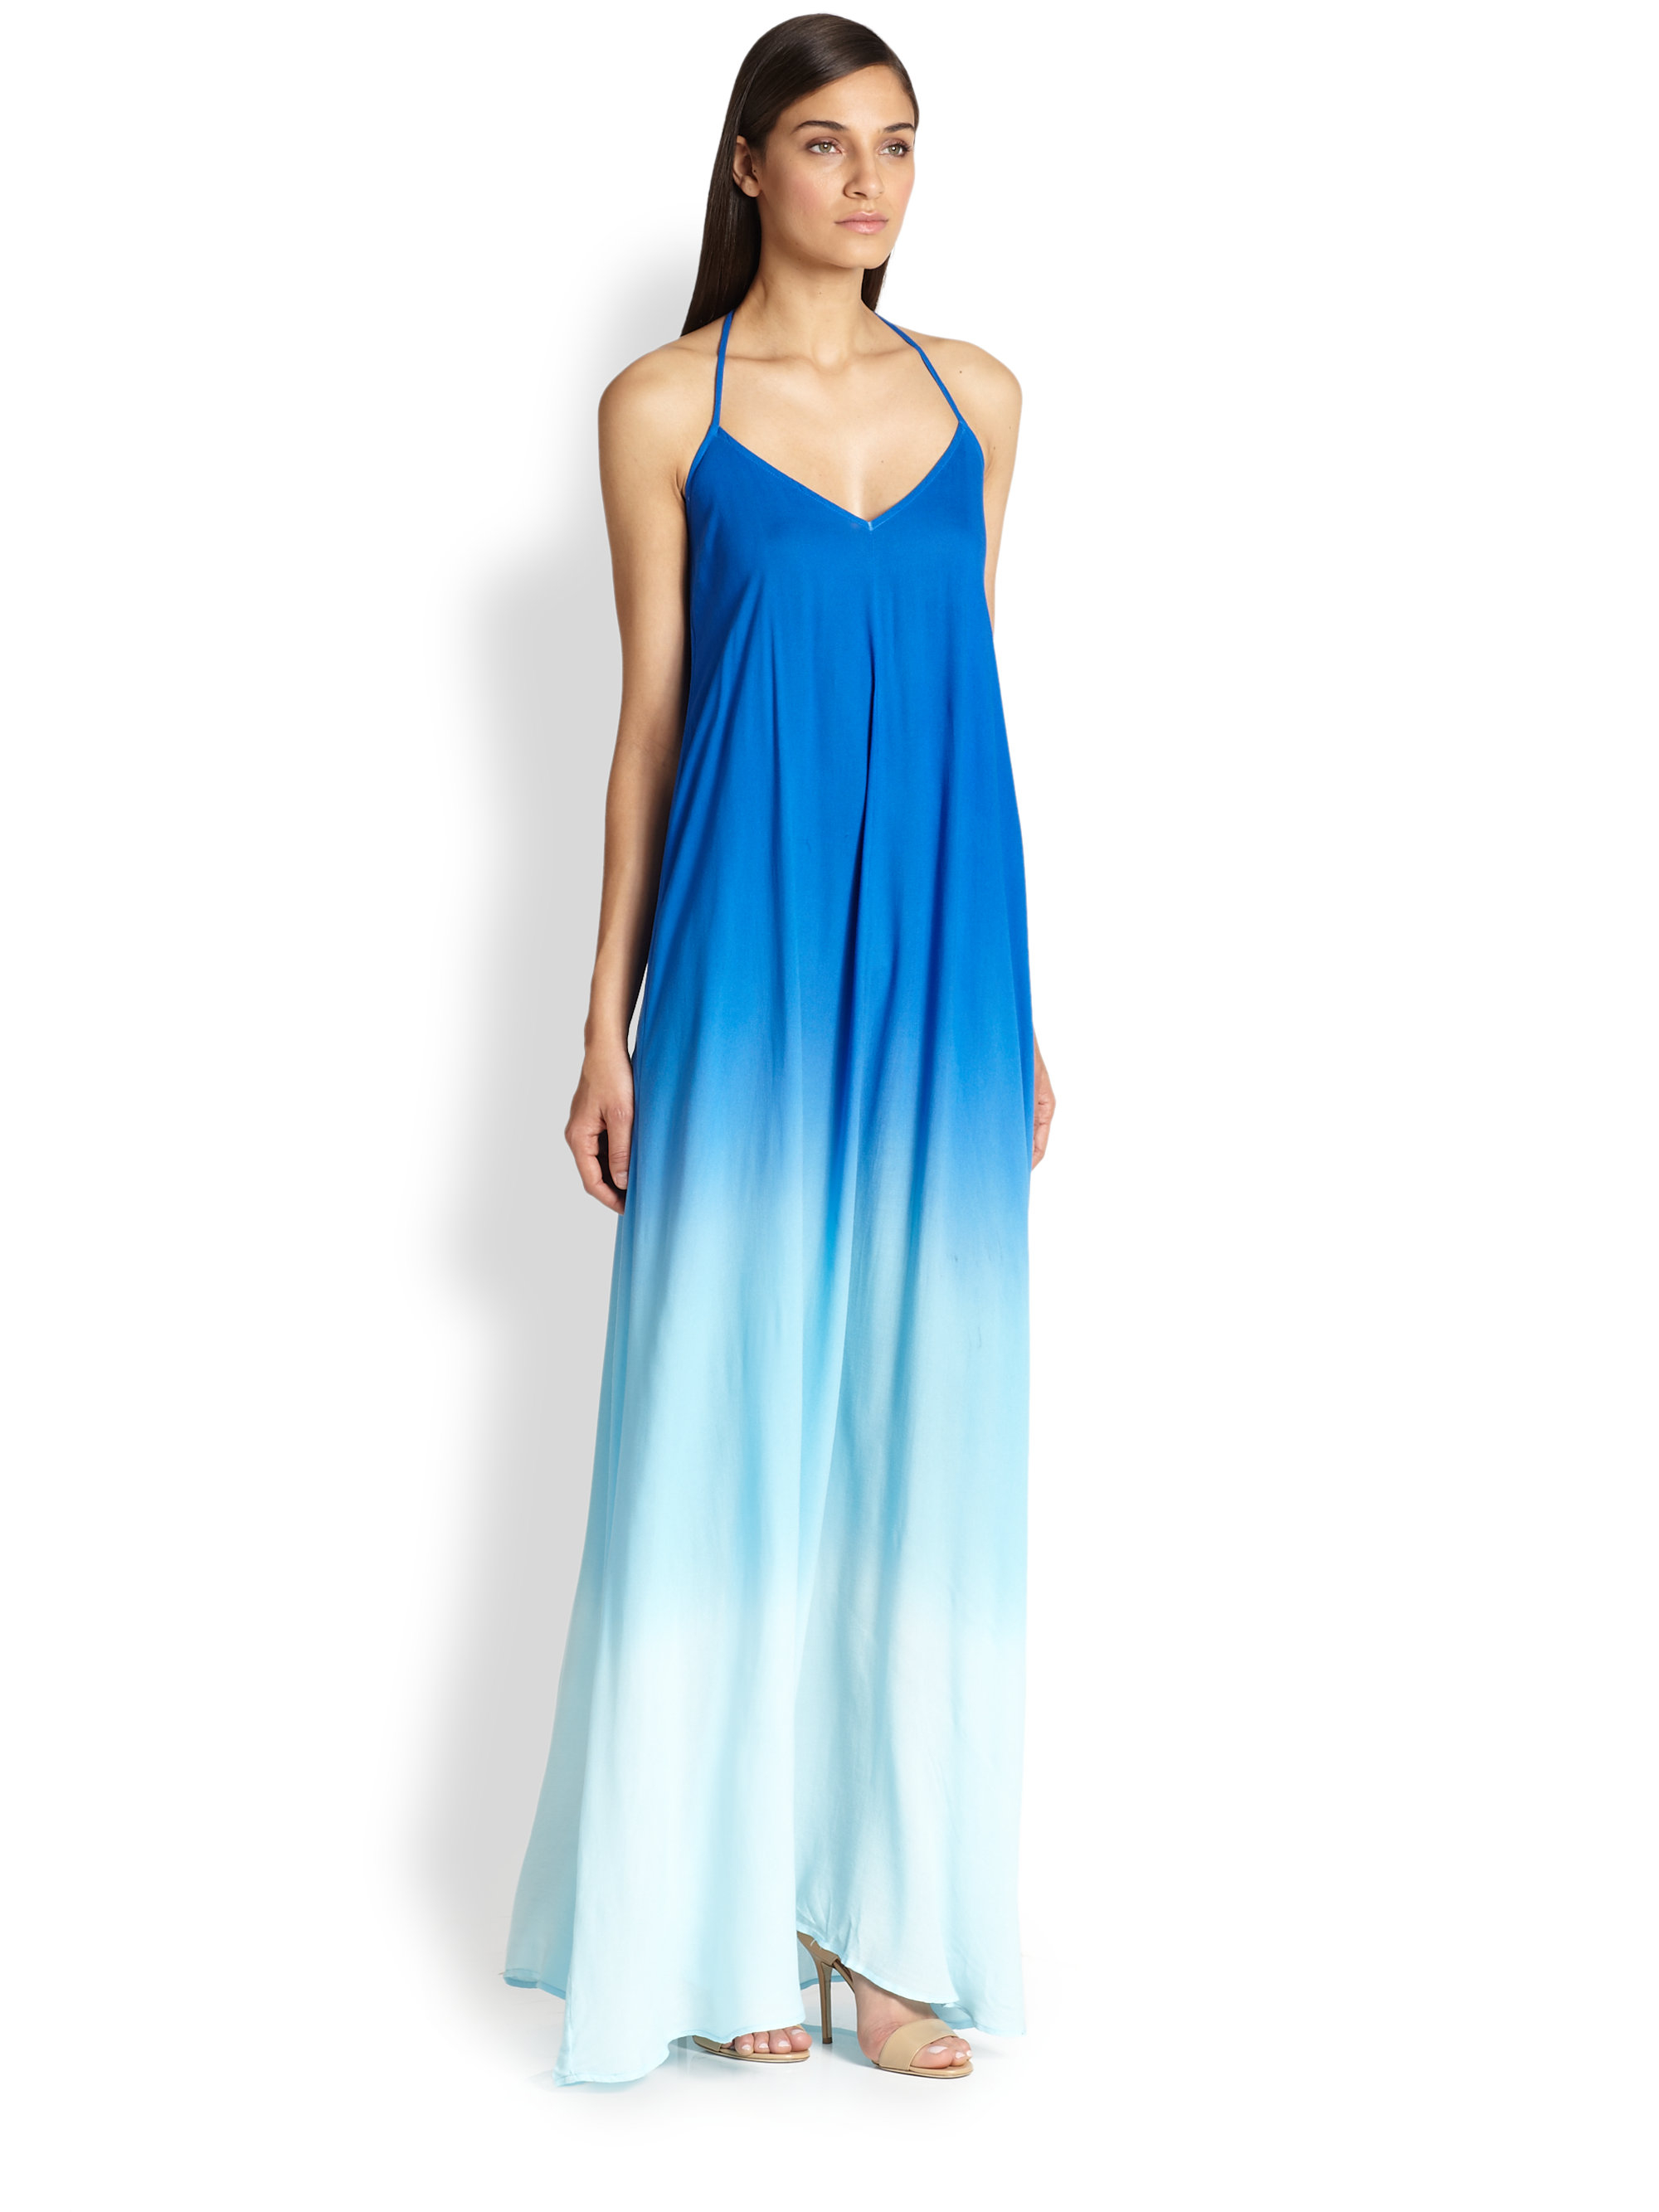 Lyst Young Fabulous Broke Fortine Ombre Trapeze Maxi Dress In Blue